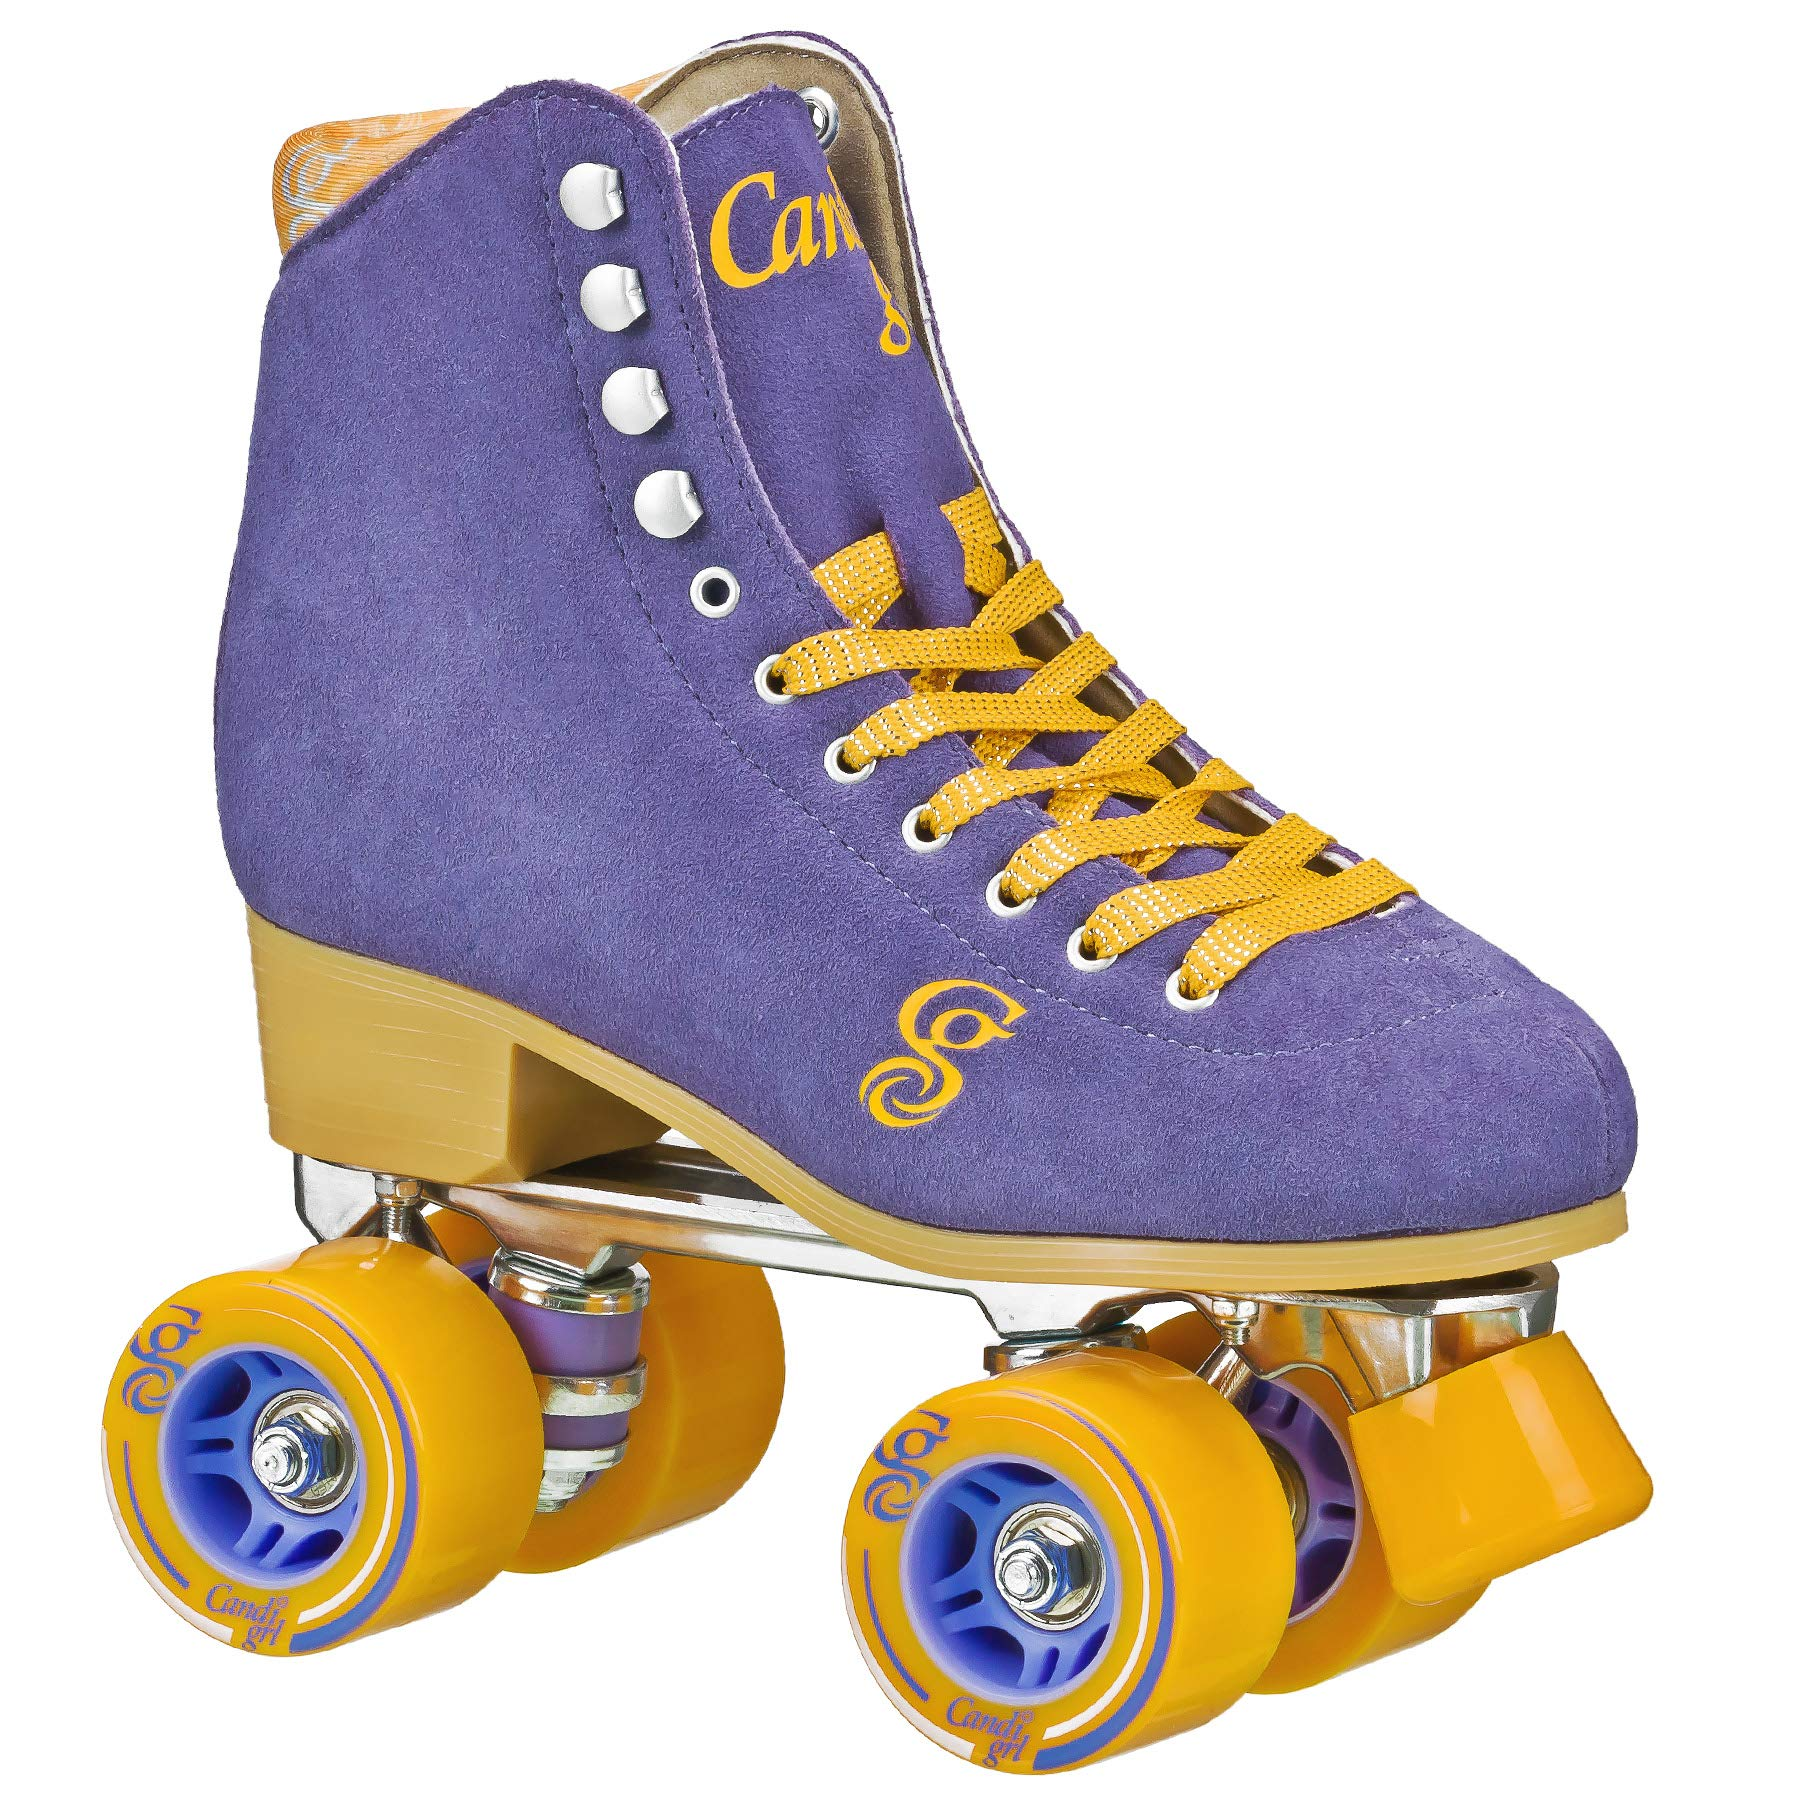 Candi GRL Carlin Women's Roller Skate (Periwinkle/Orange) (3)